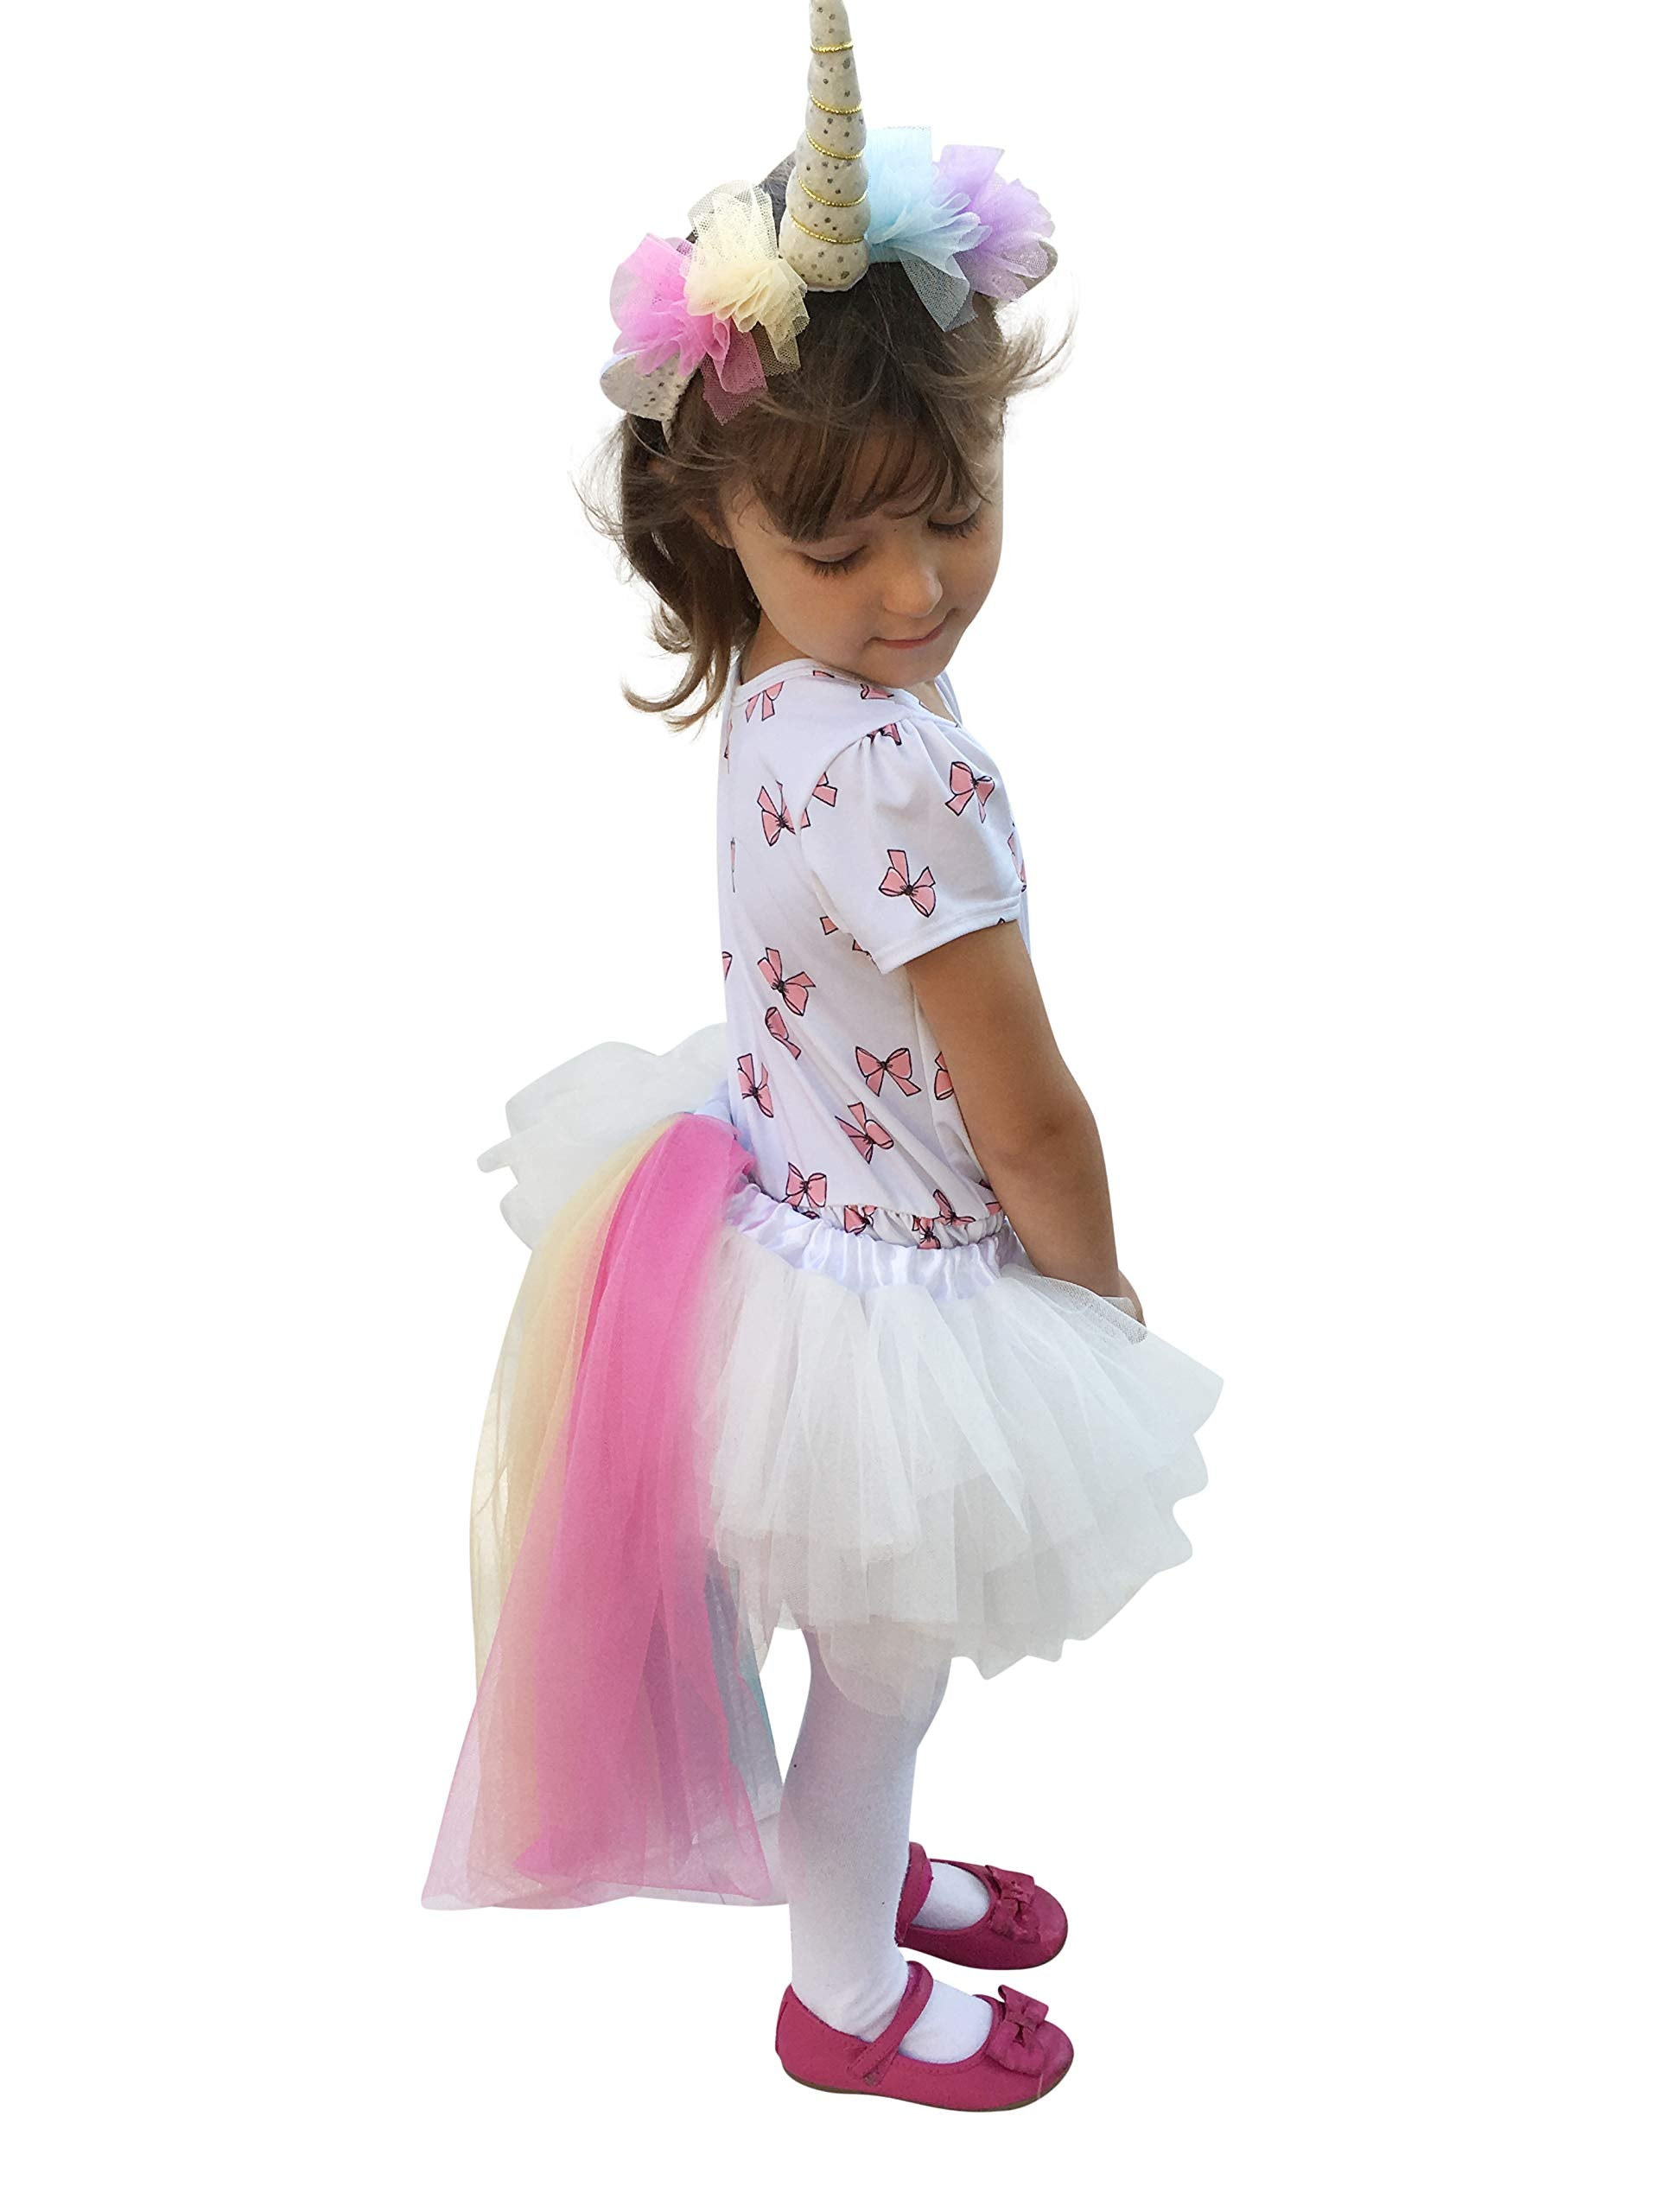 6ee05736b Rainbow Unicorn Tutu Dress Up Costume Outfit for Girls Birthday : Headband, Skirt  Tail Outfit Siz.